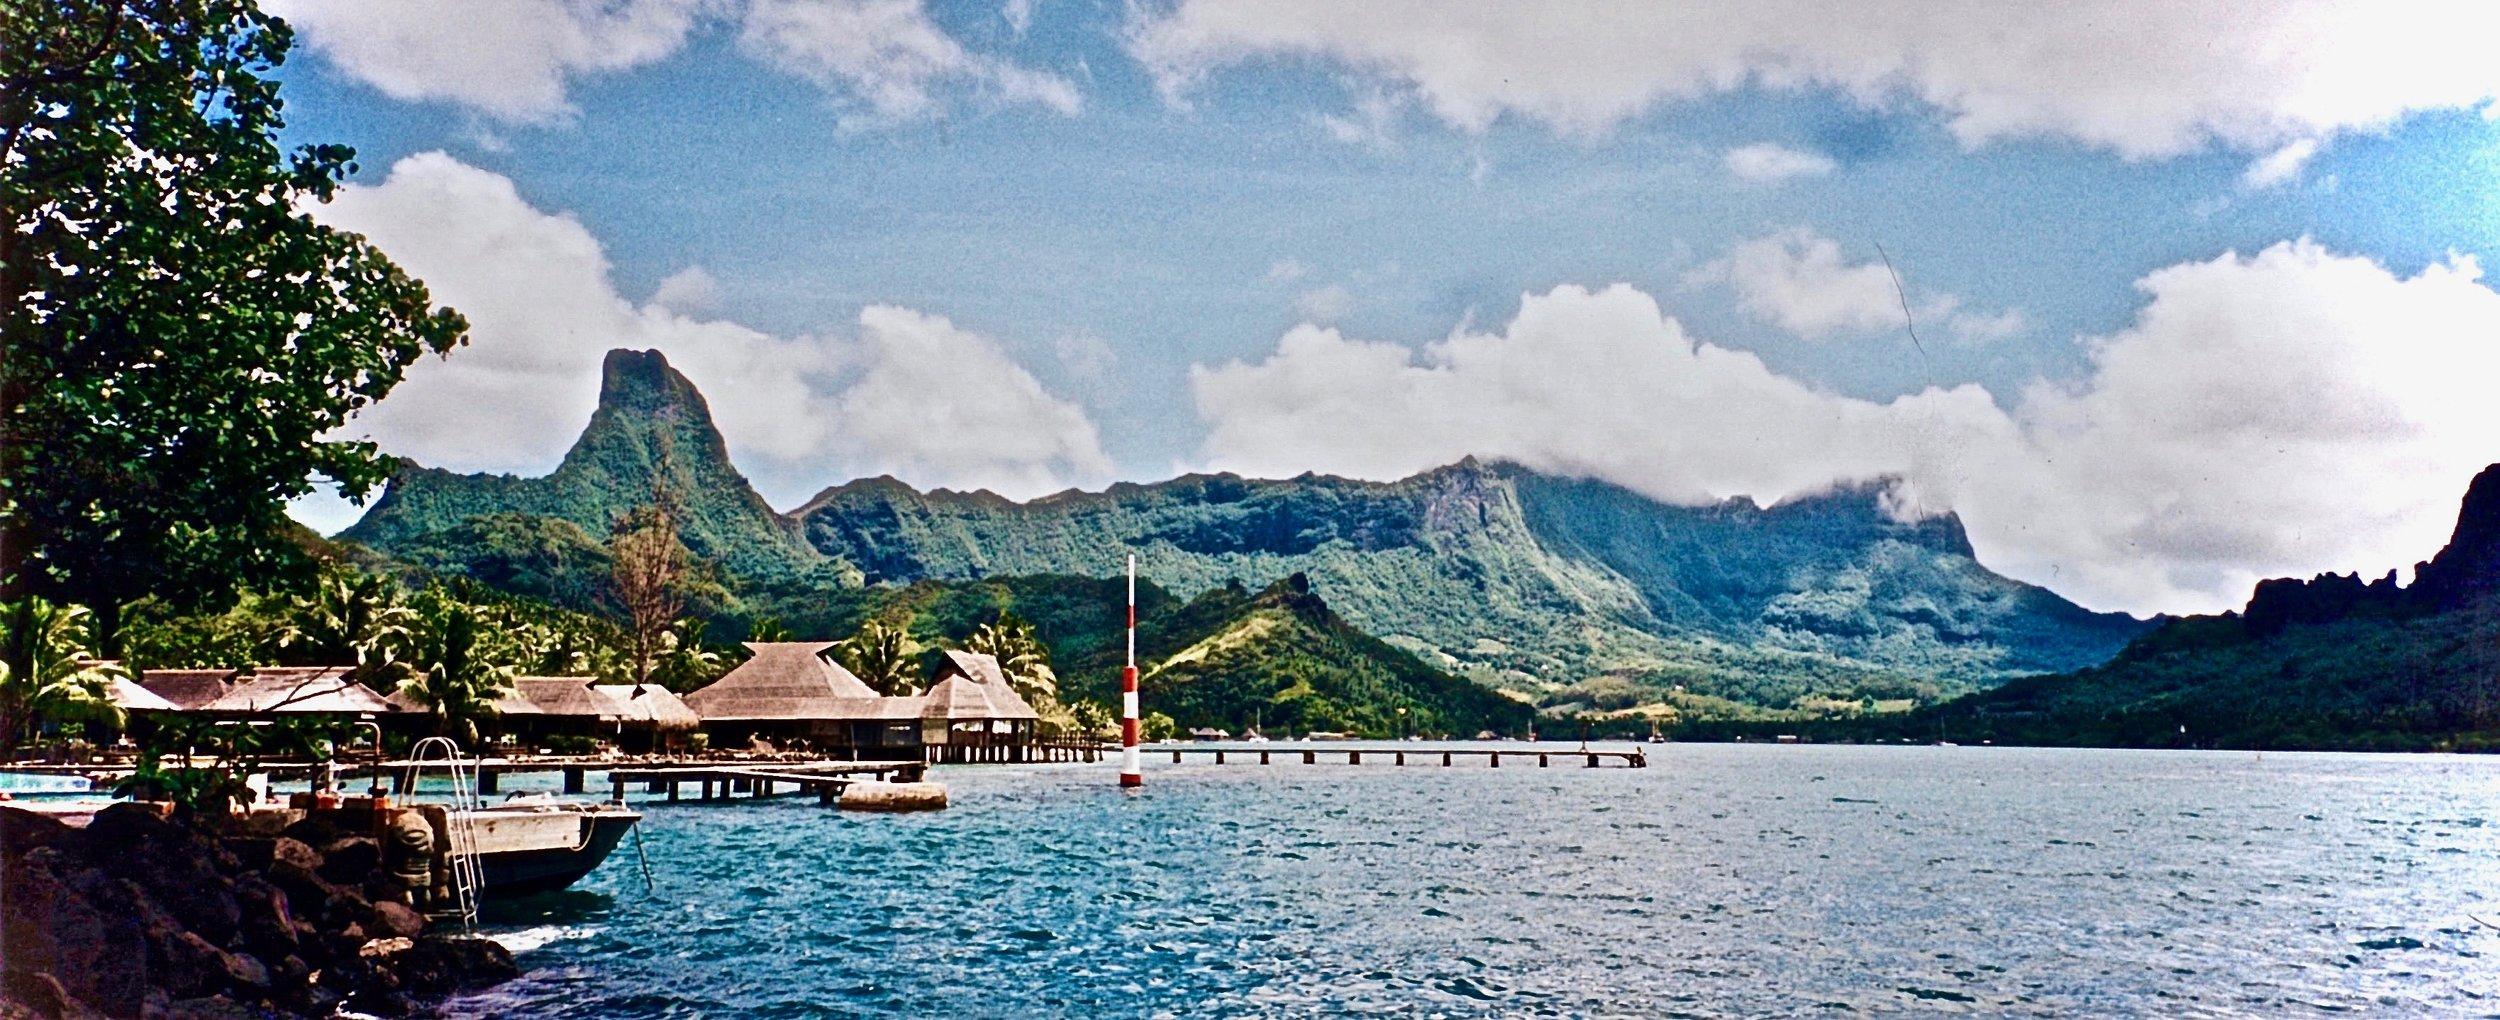 Tahiti perfect view huts water.jpg